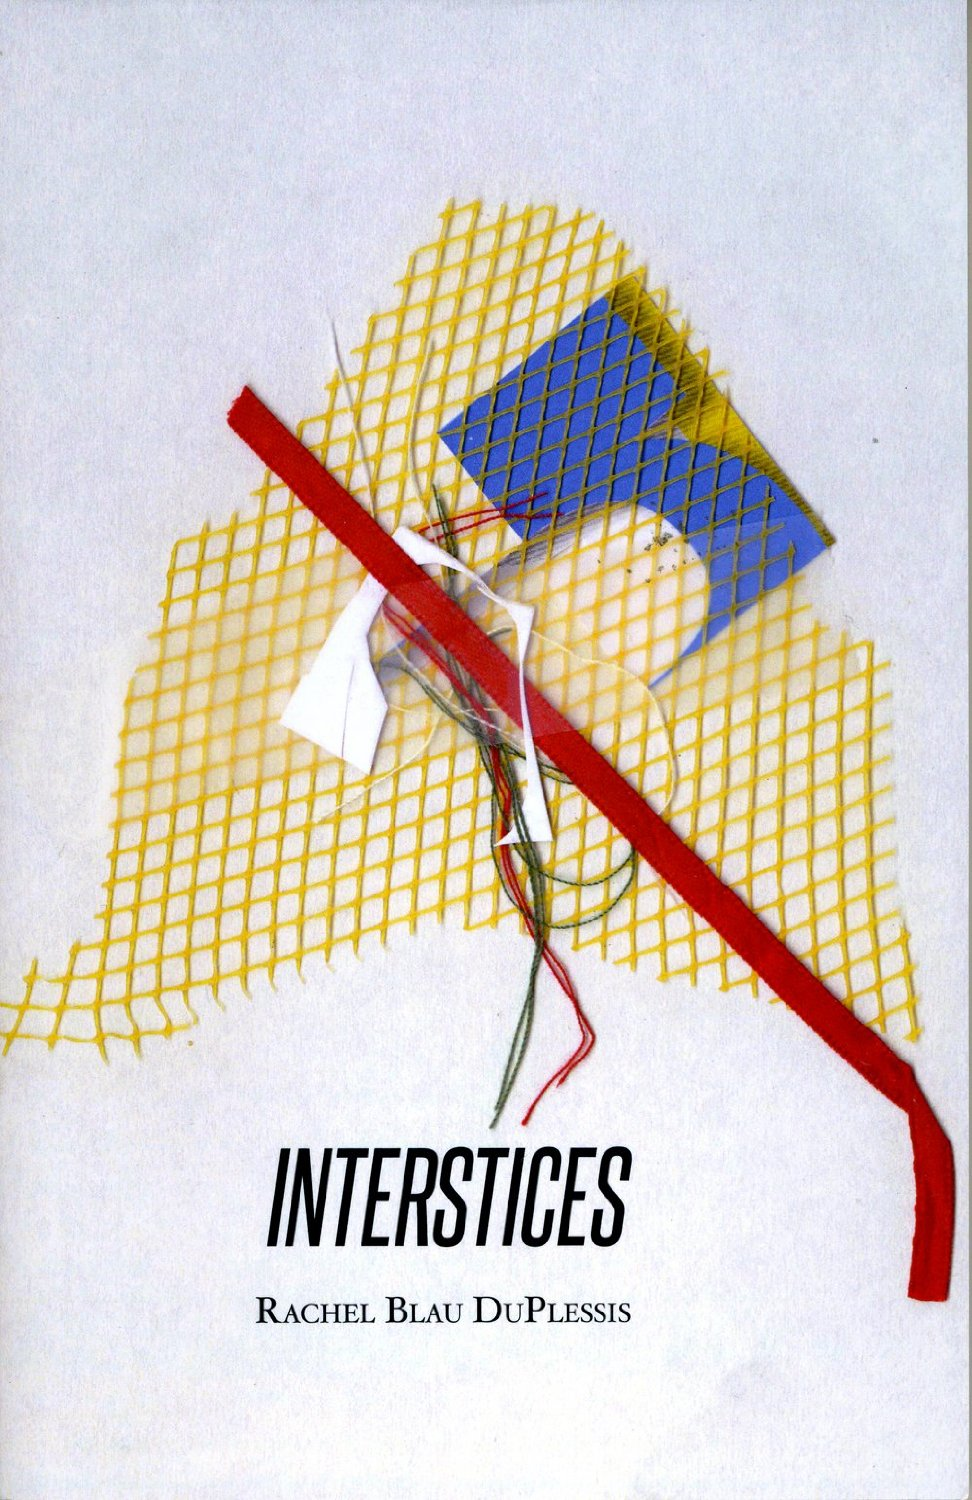 Interstices by Rachel Blau DuPlessis